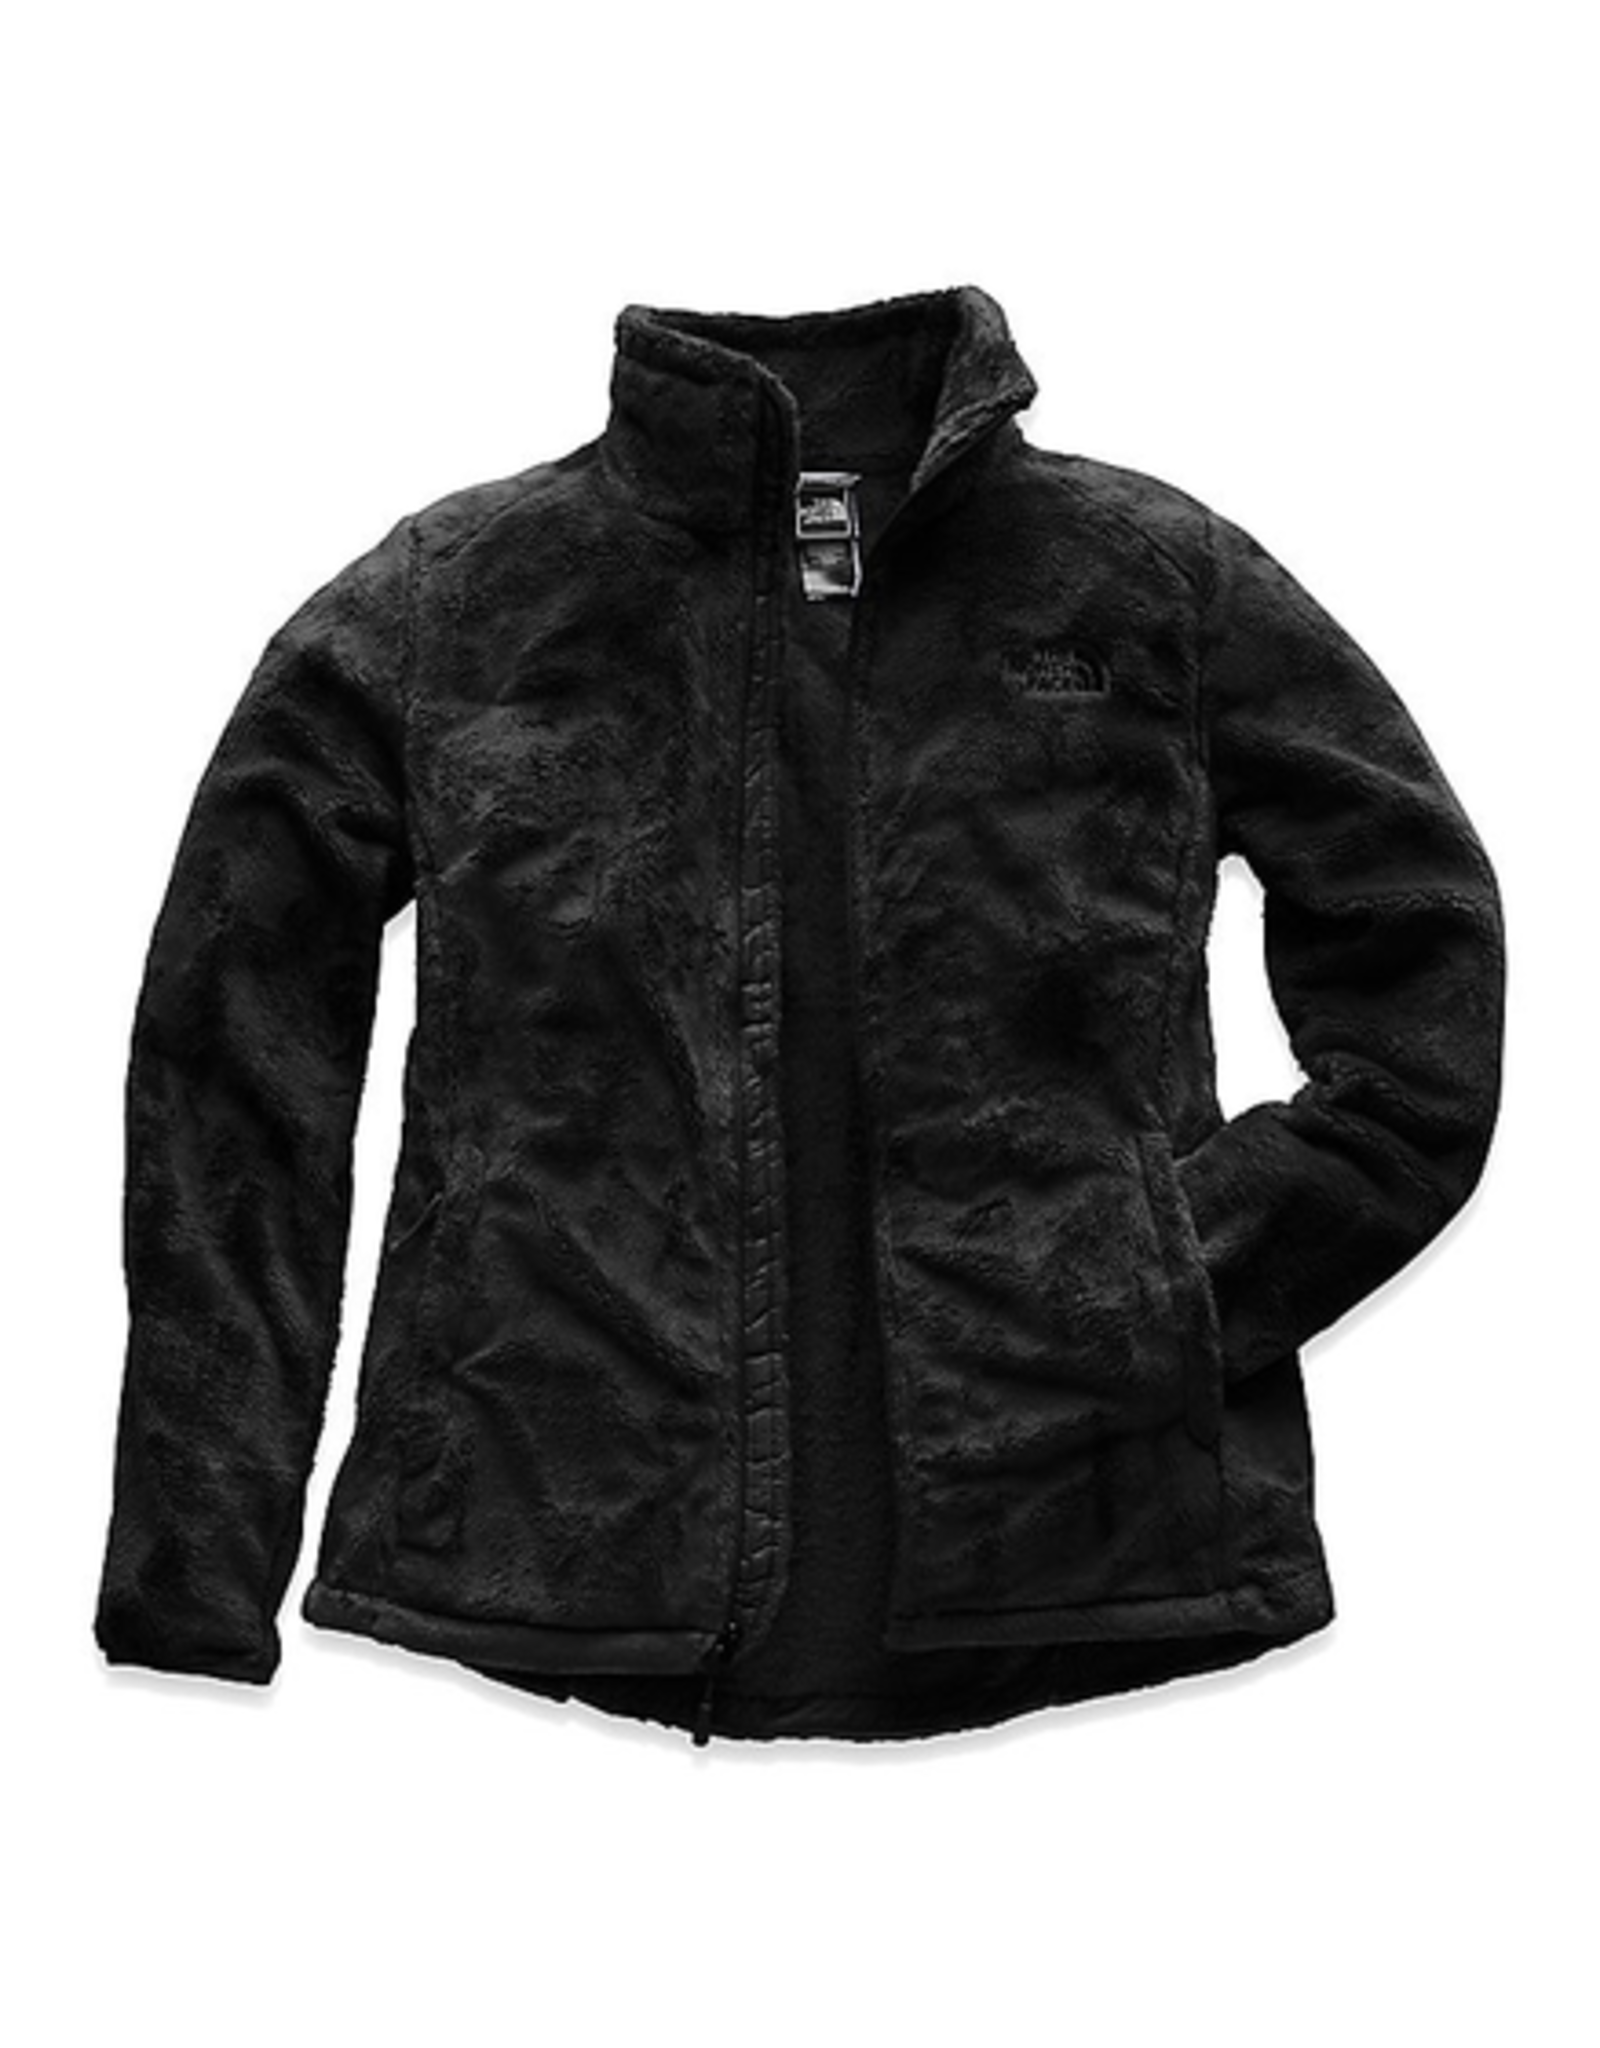 North Face North Face Women's Osito Jacket